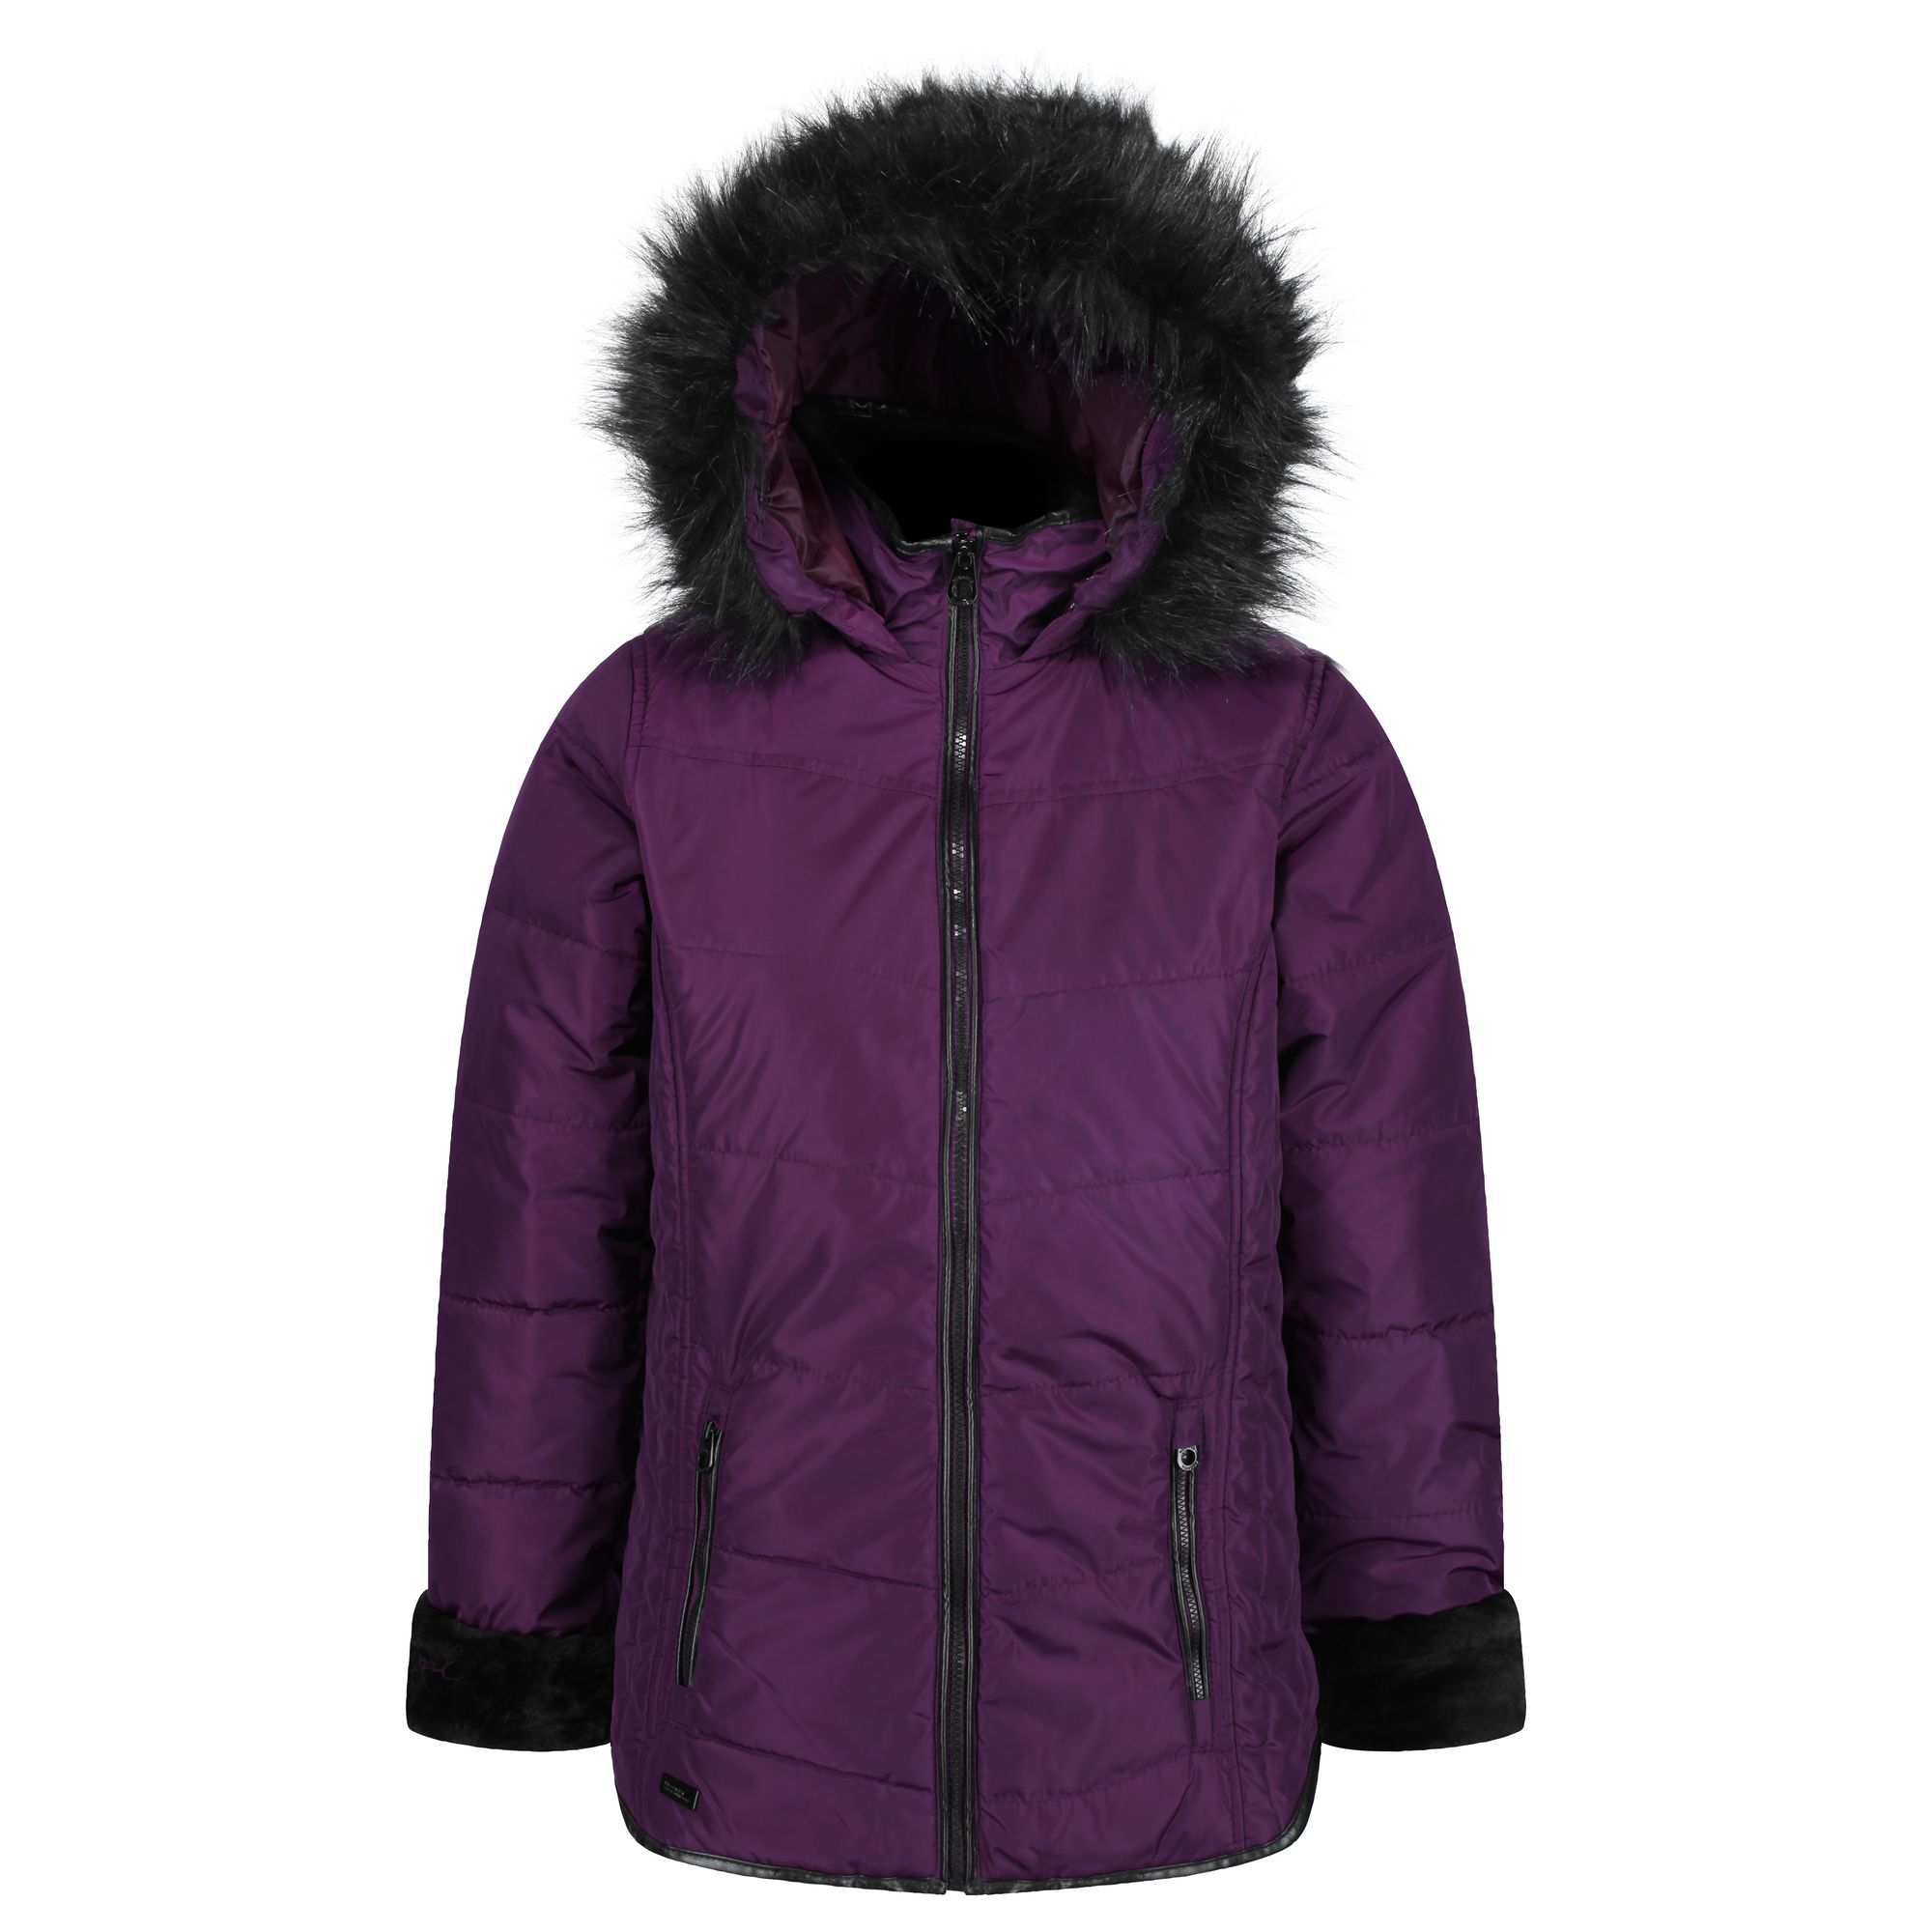 Women's prune coloured thick jacket with fur hood